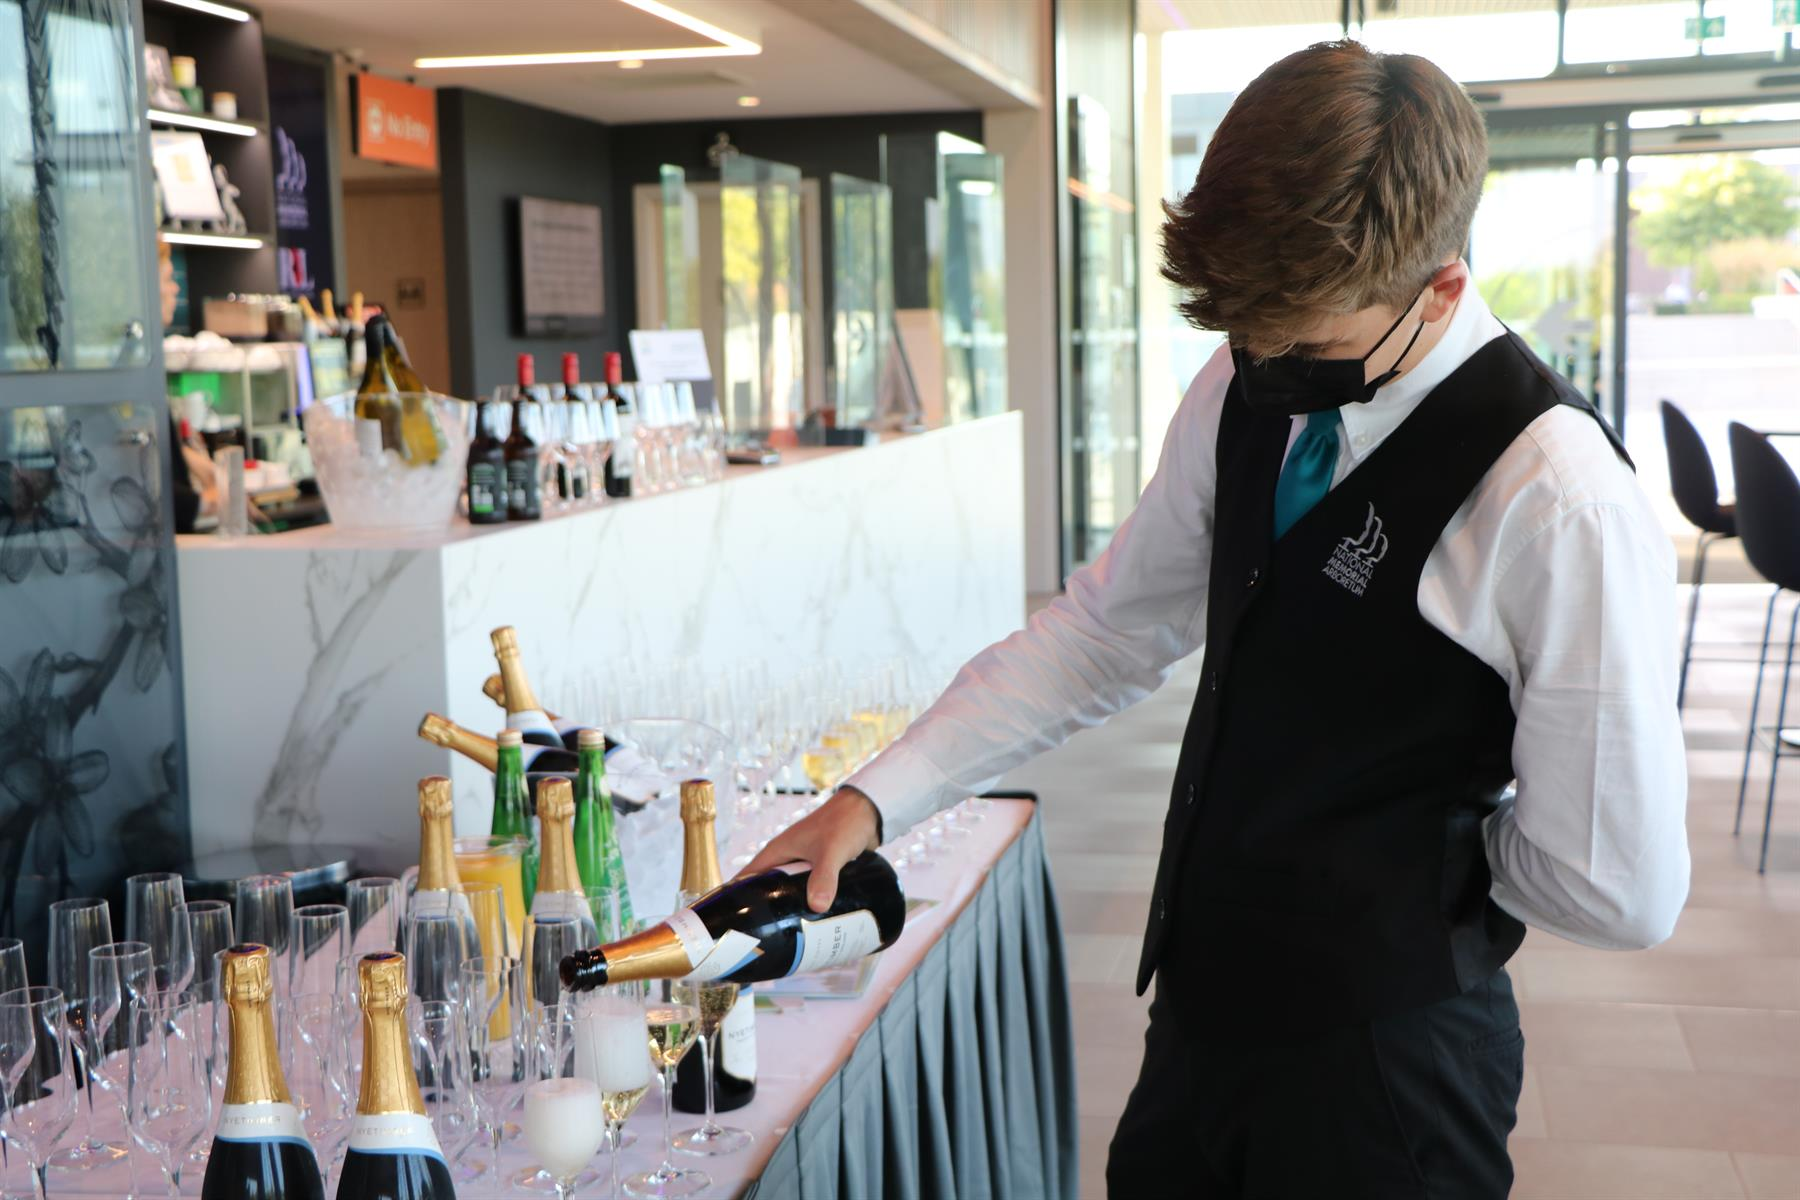 Foodservices Assistant pouring champagne at event